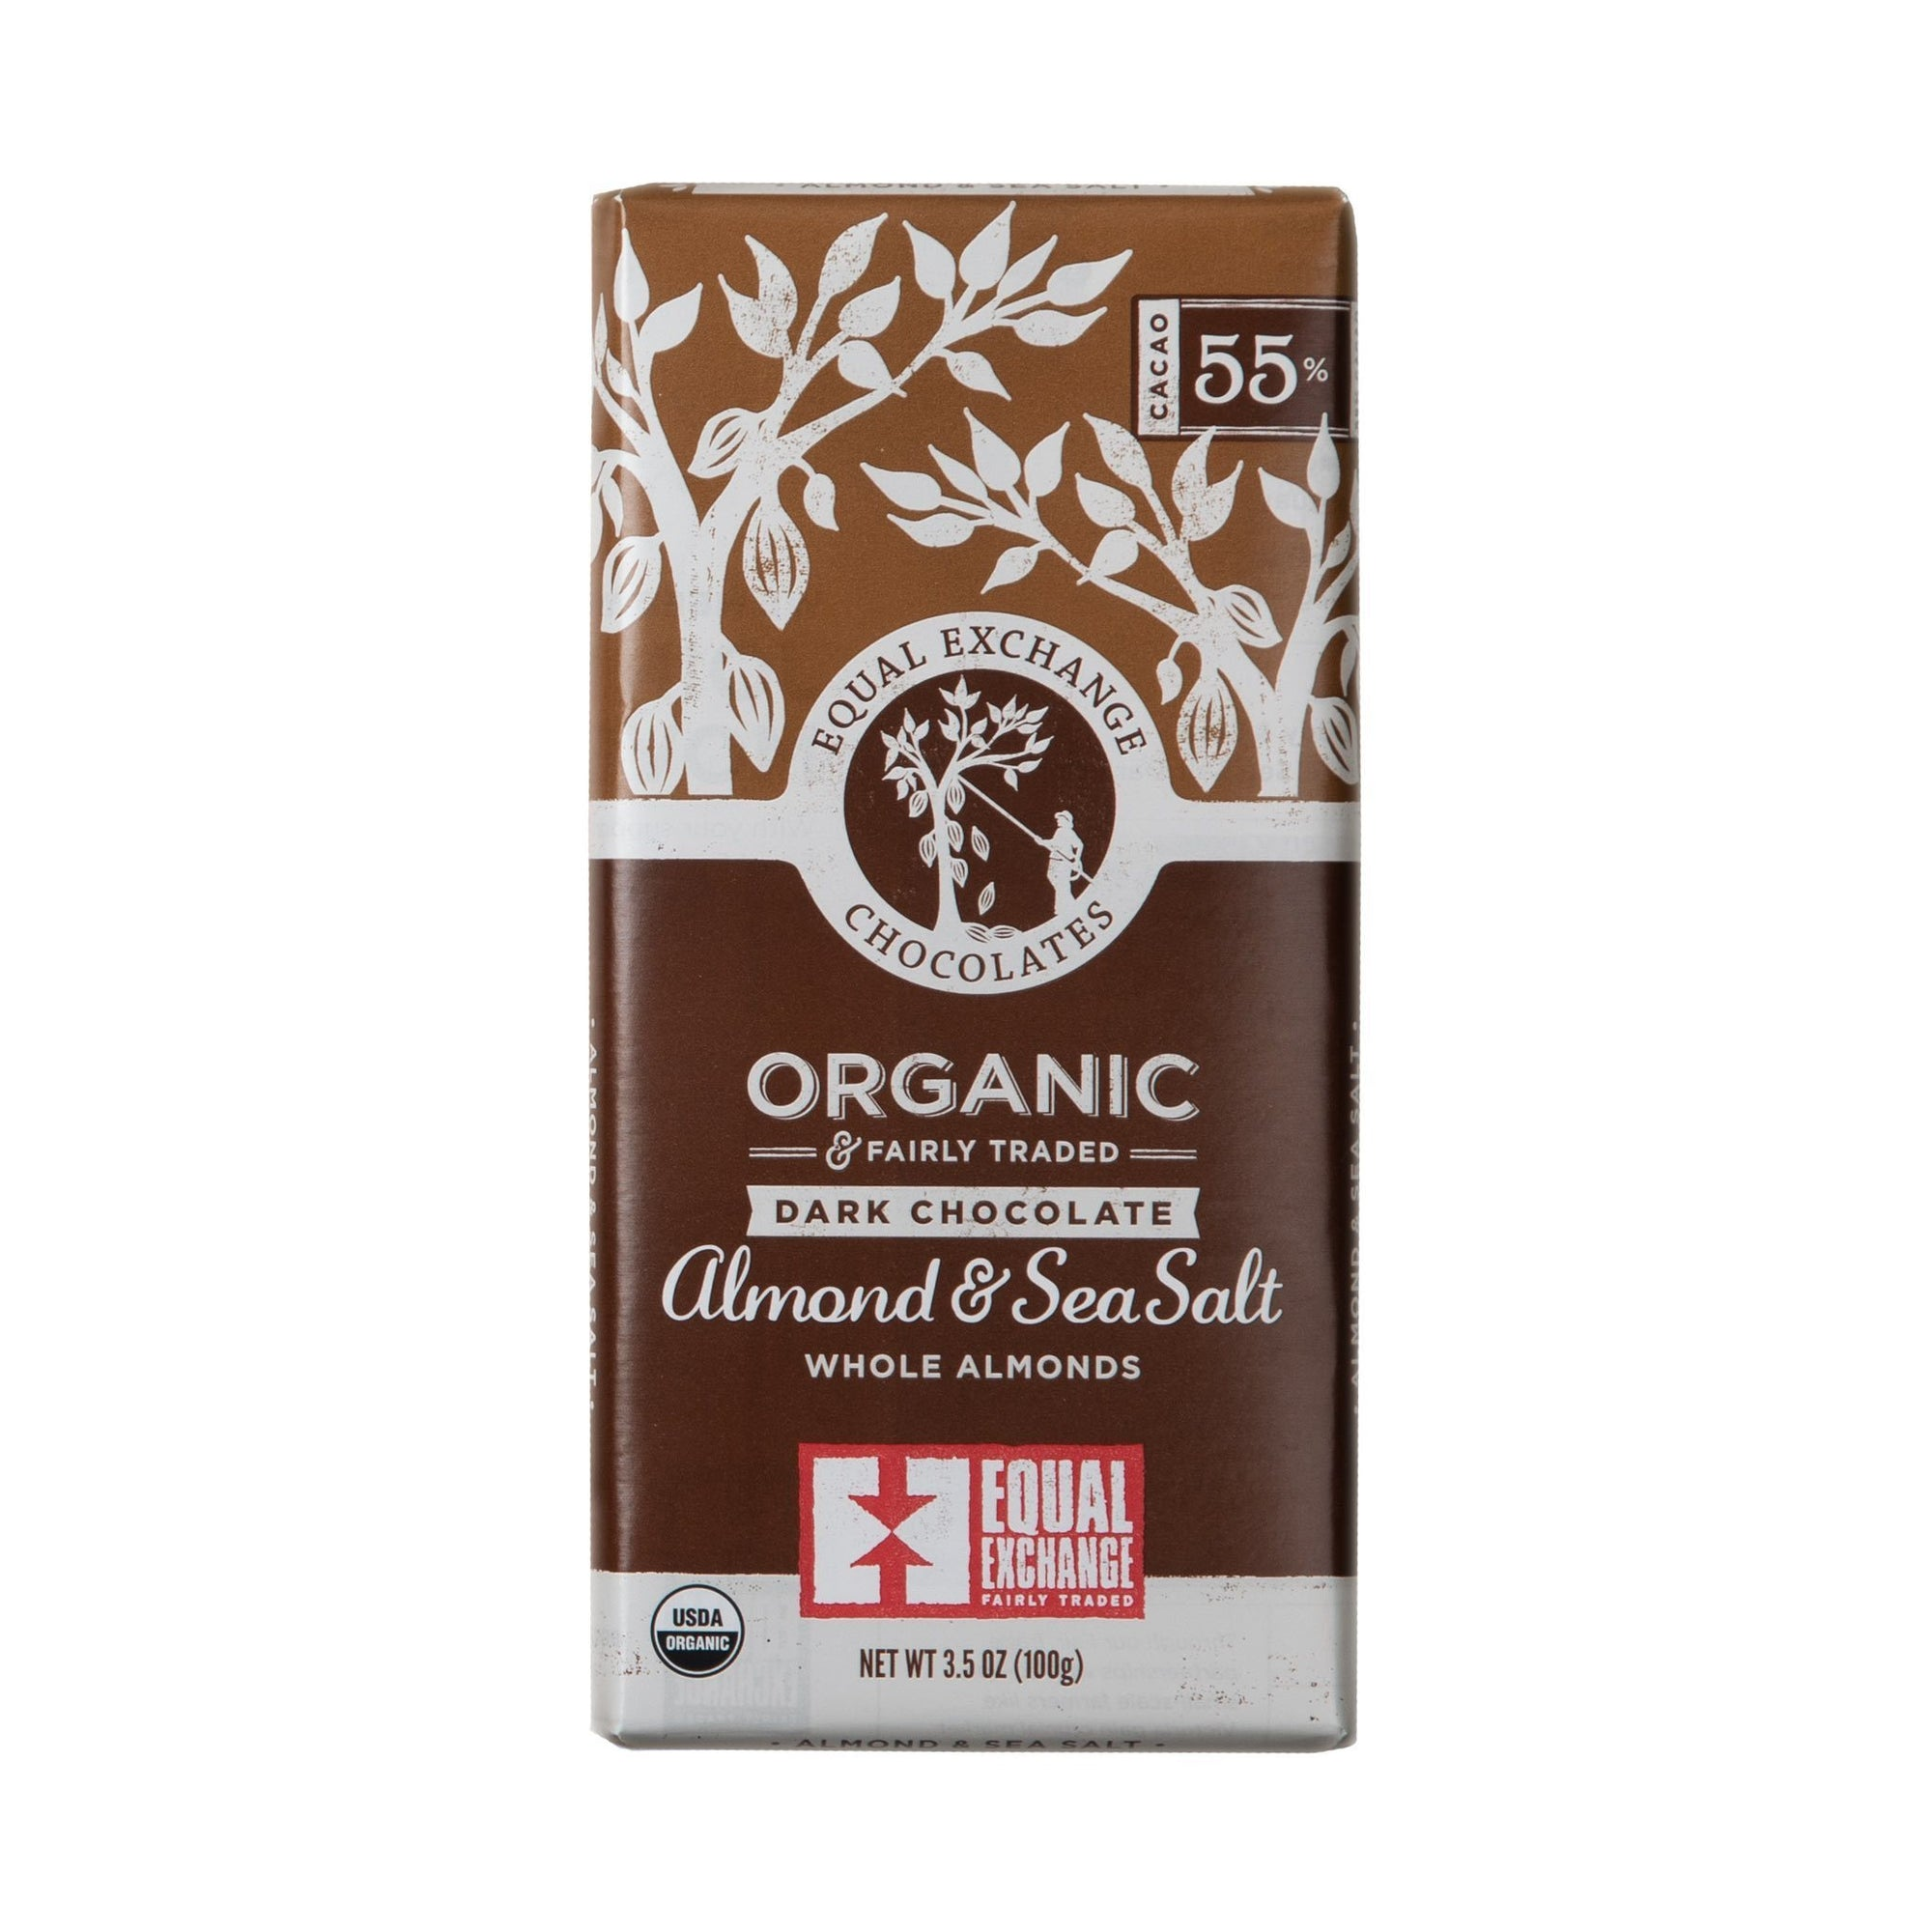 Almond & Sea Salt Organic Dark Chocolate - Equal Exchange -3.5 oz